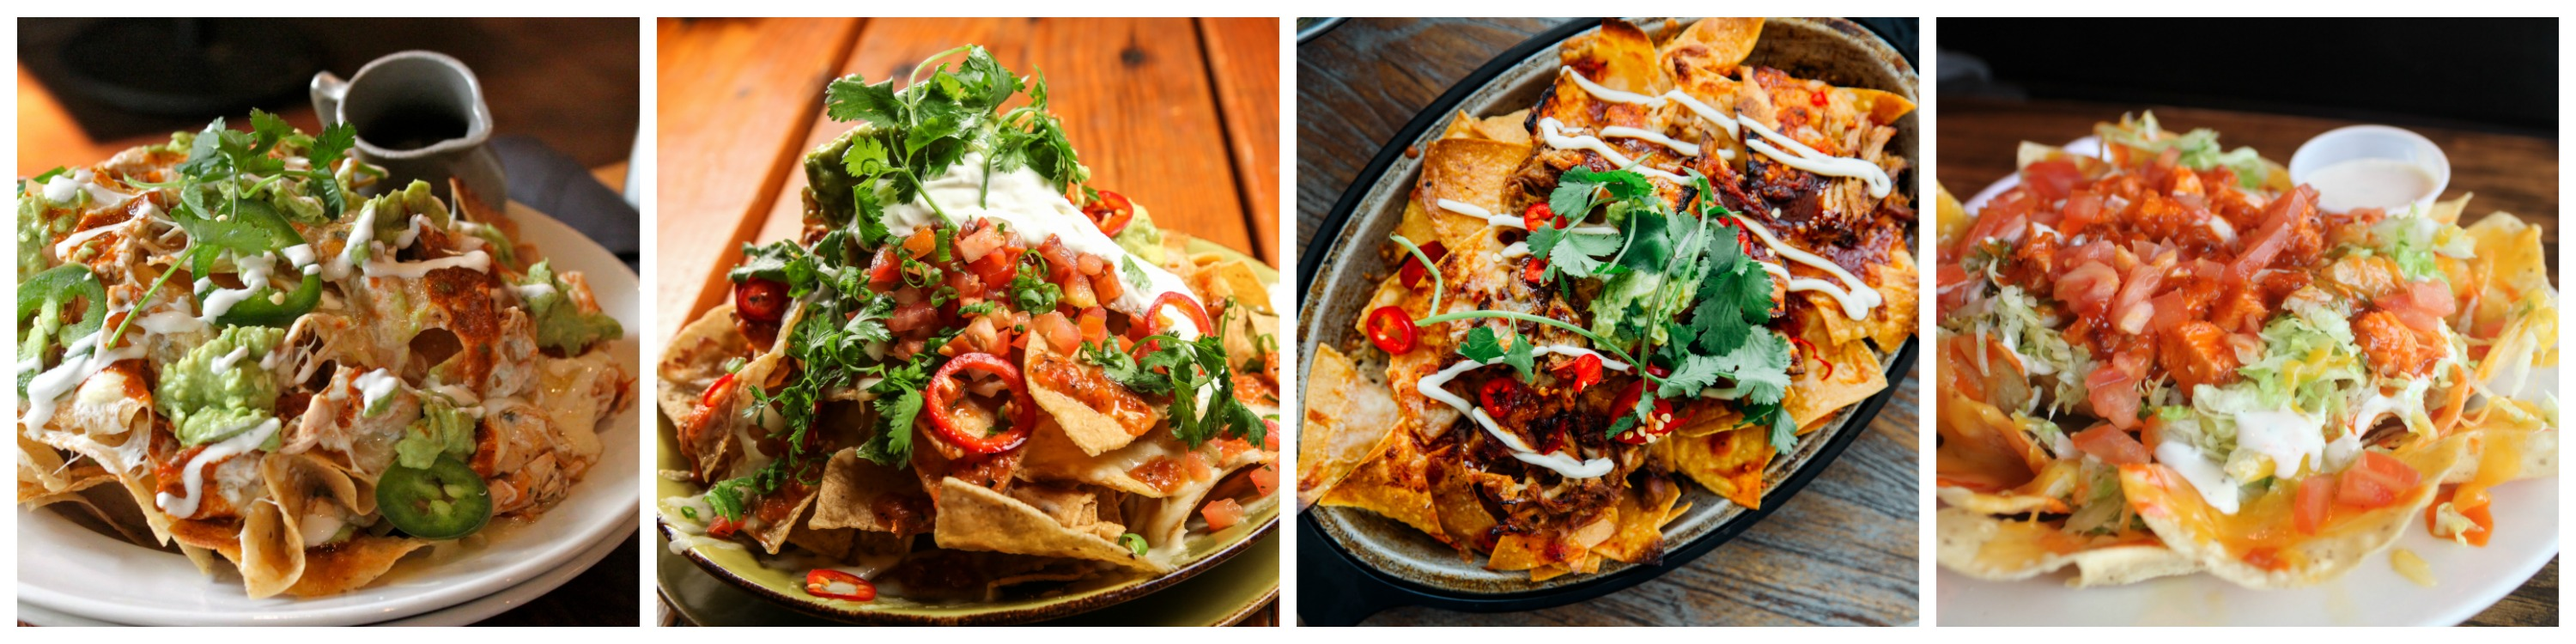 4 images of nachos